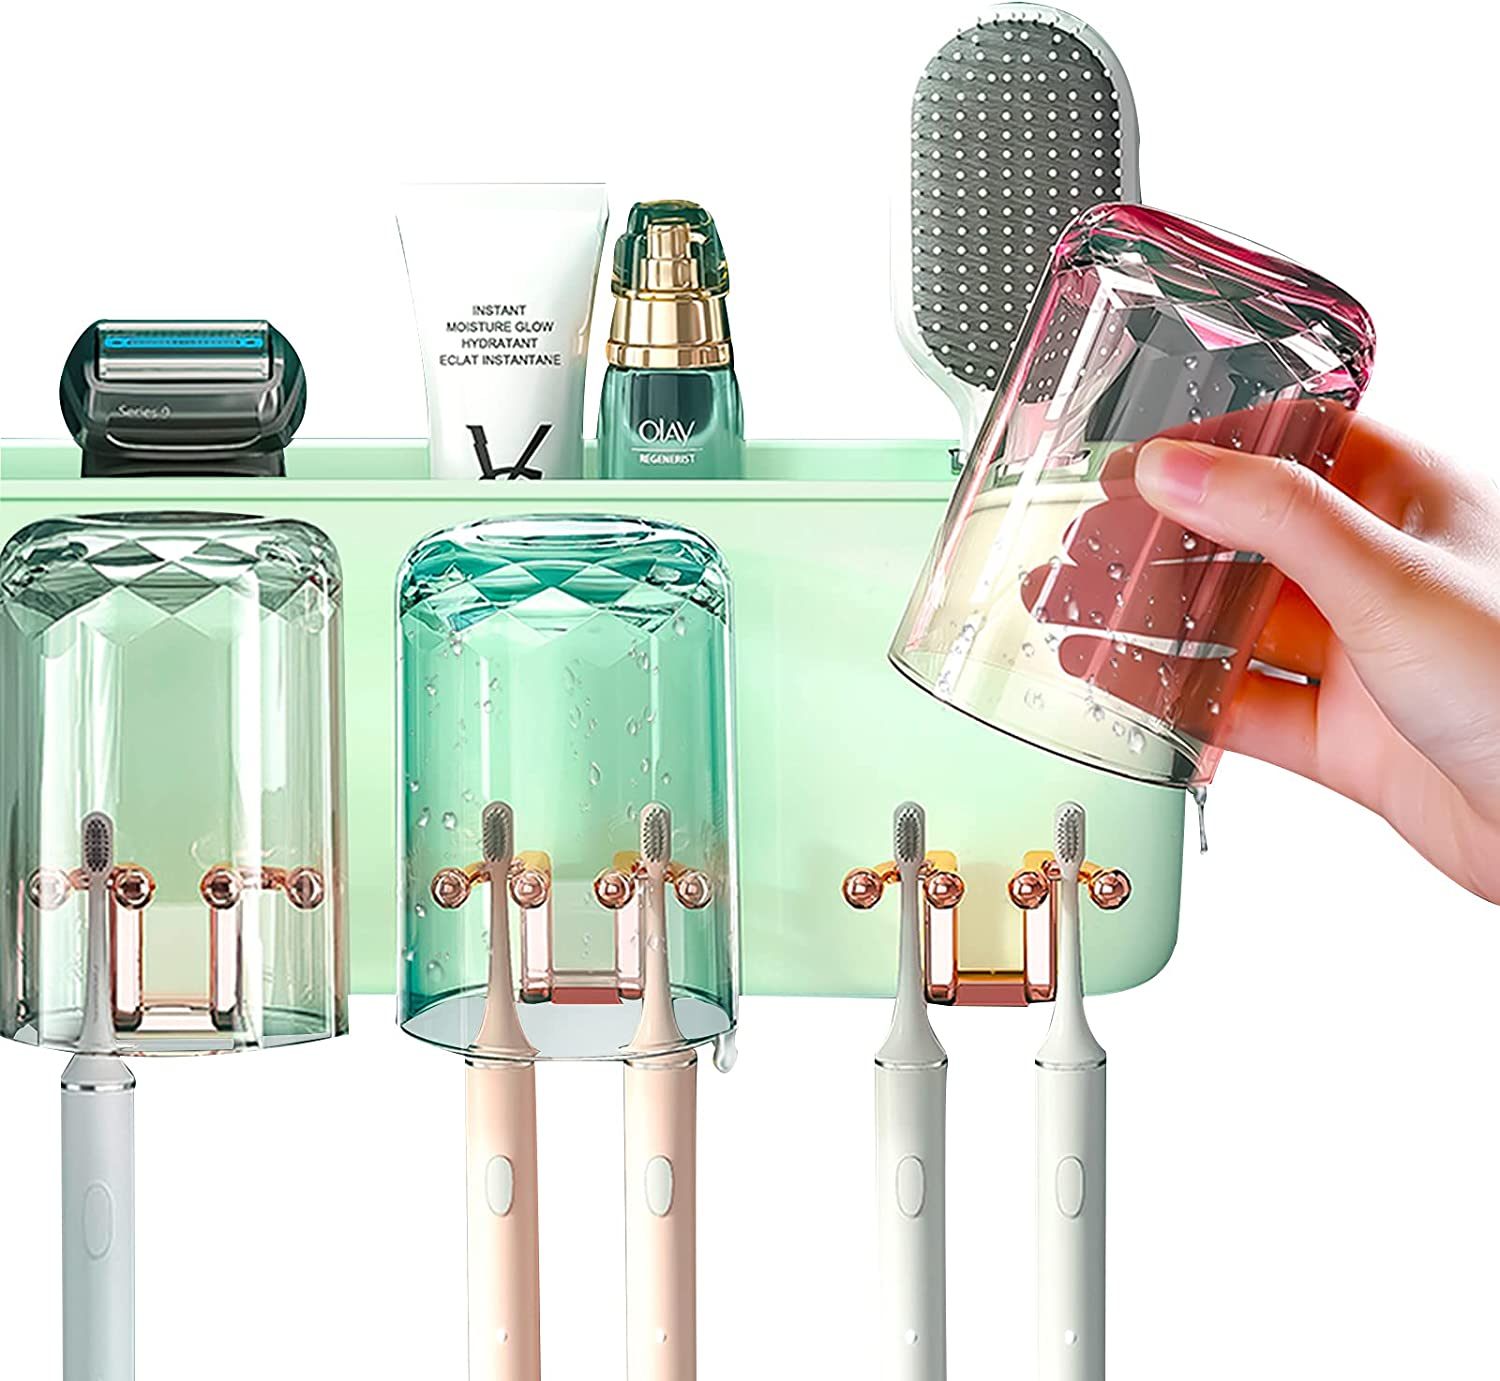 WAYCOM 2021 Special price for a limited time Luxurious Credence Toothbrush Holder Wall Mounted-Multifuncti